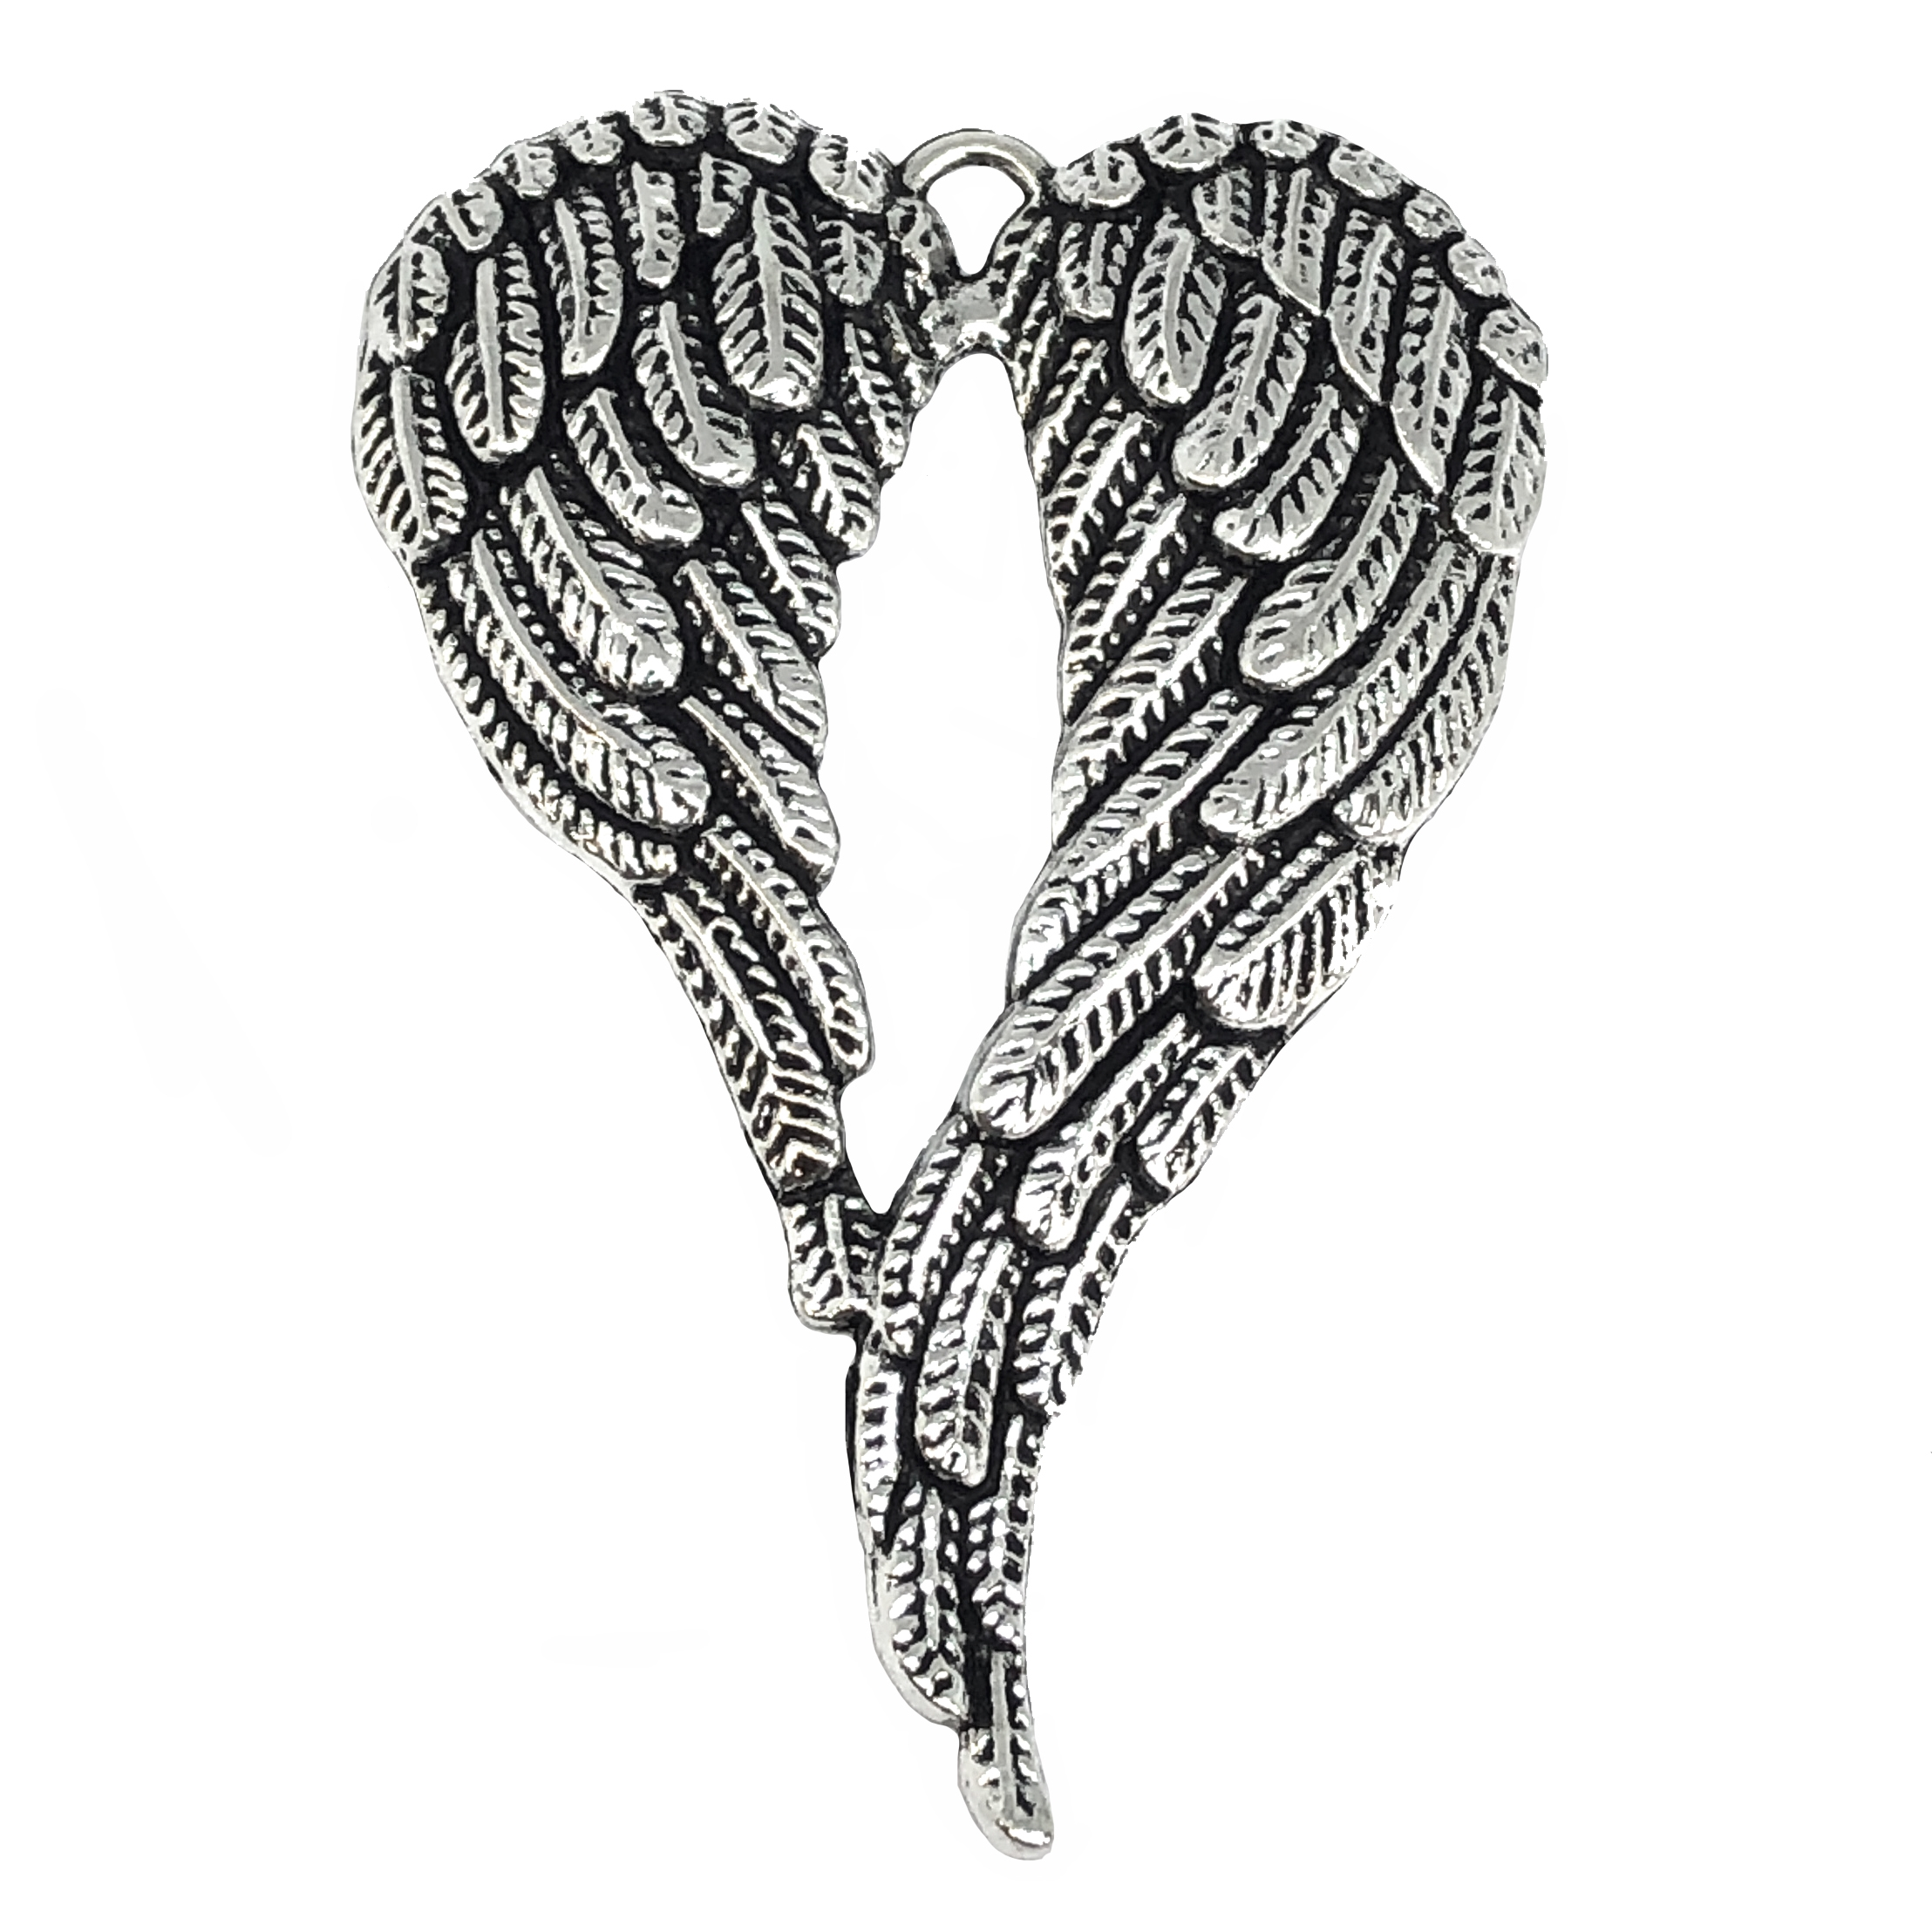 cast wings, wing stampings, wing pendant, Steampunk jewelry, 50x47mm, antique silvertone, B'sue Boutiques, jewelry making, vintage supplies, jewelry supplies, jewelry findings, 08882, steampunk wings, wings